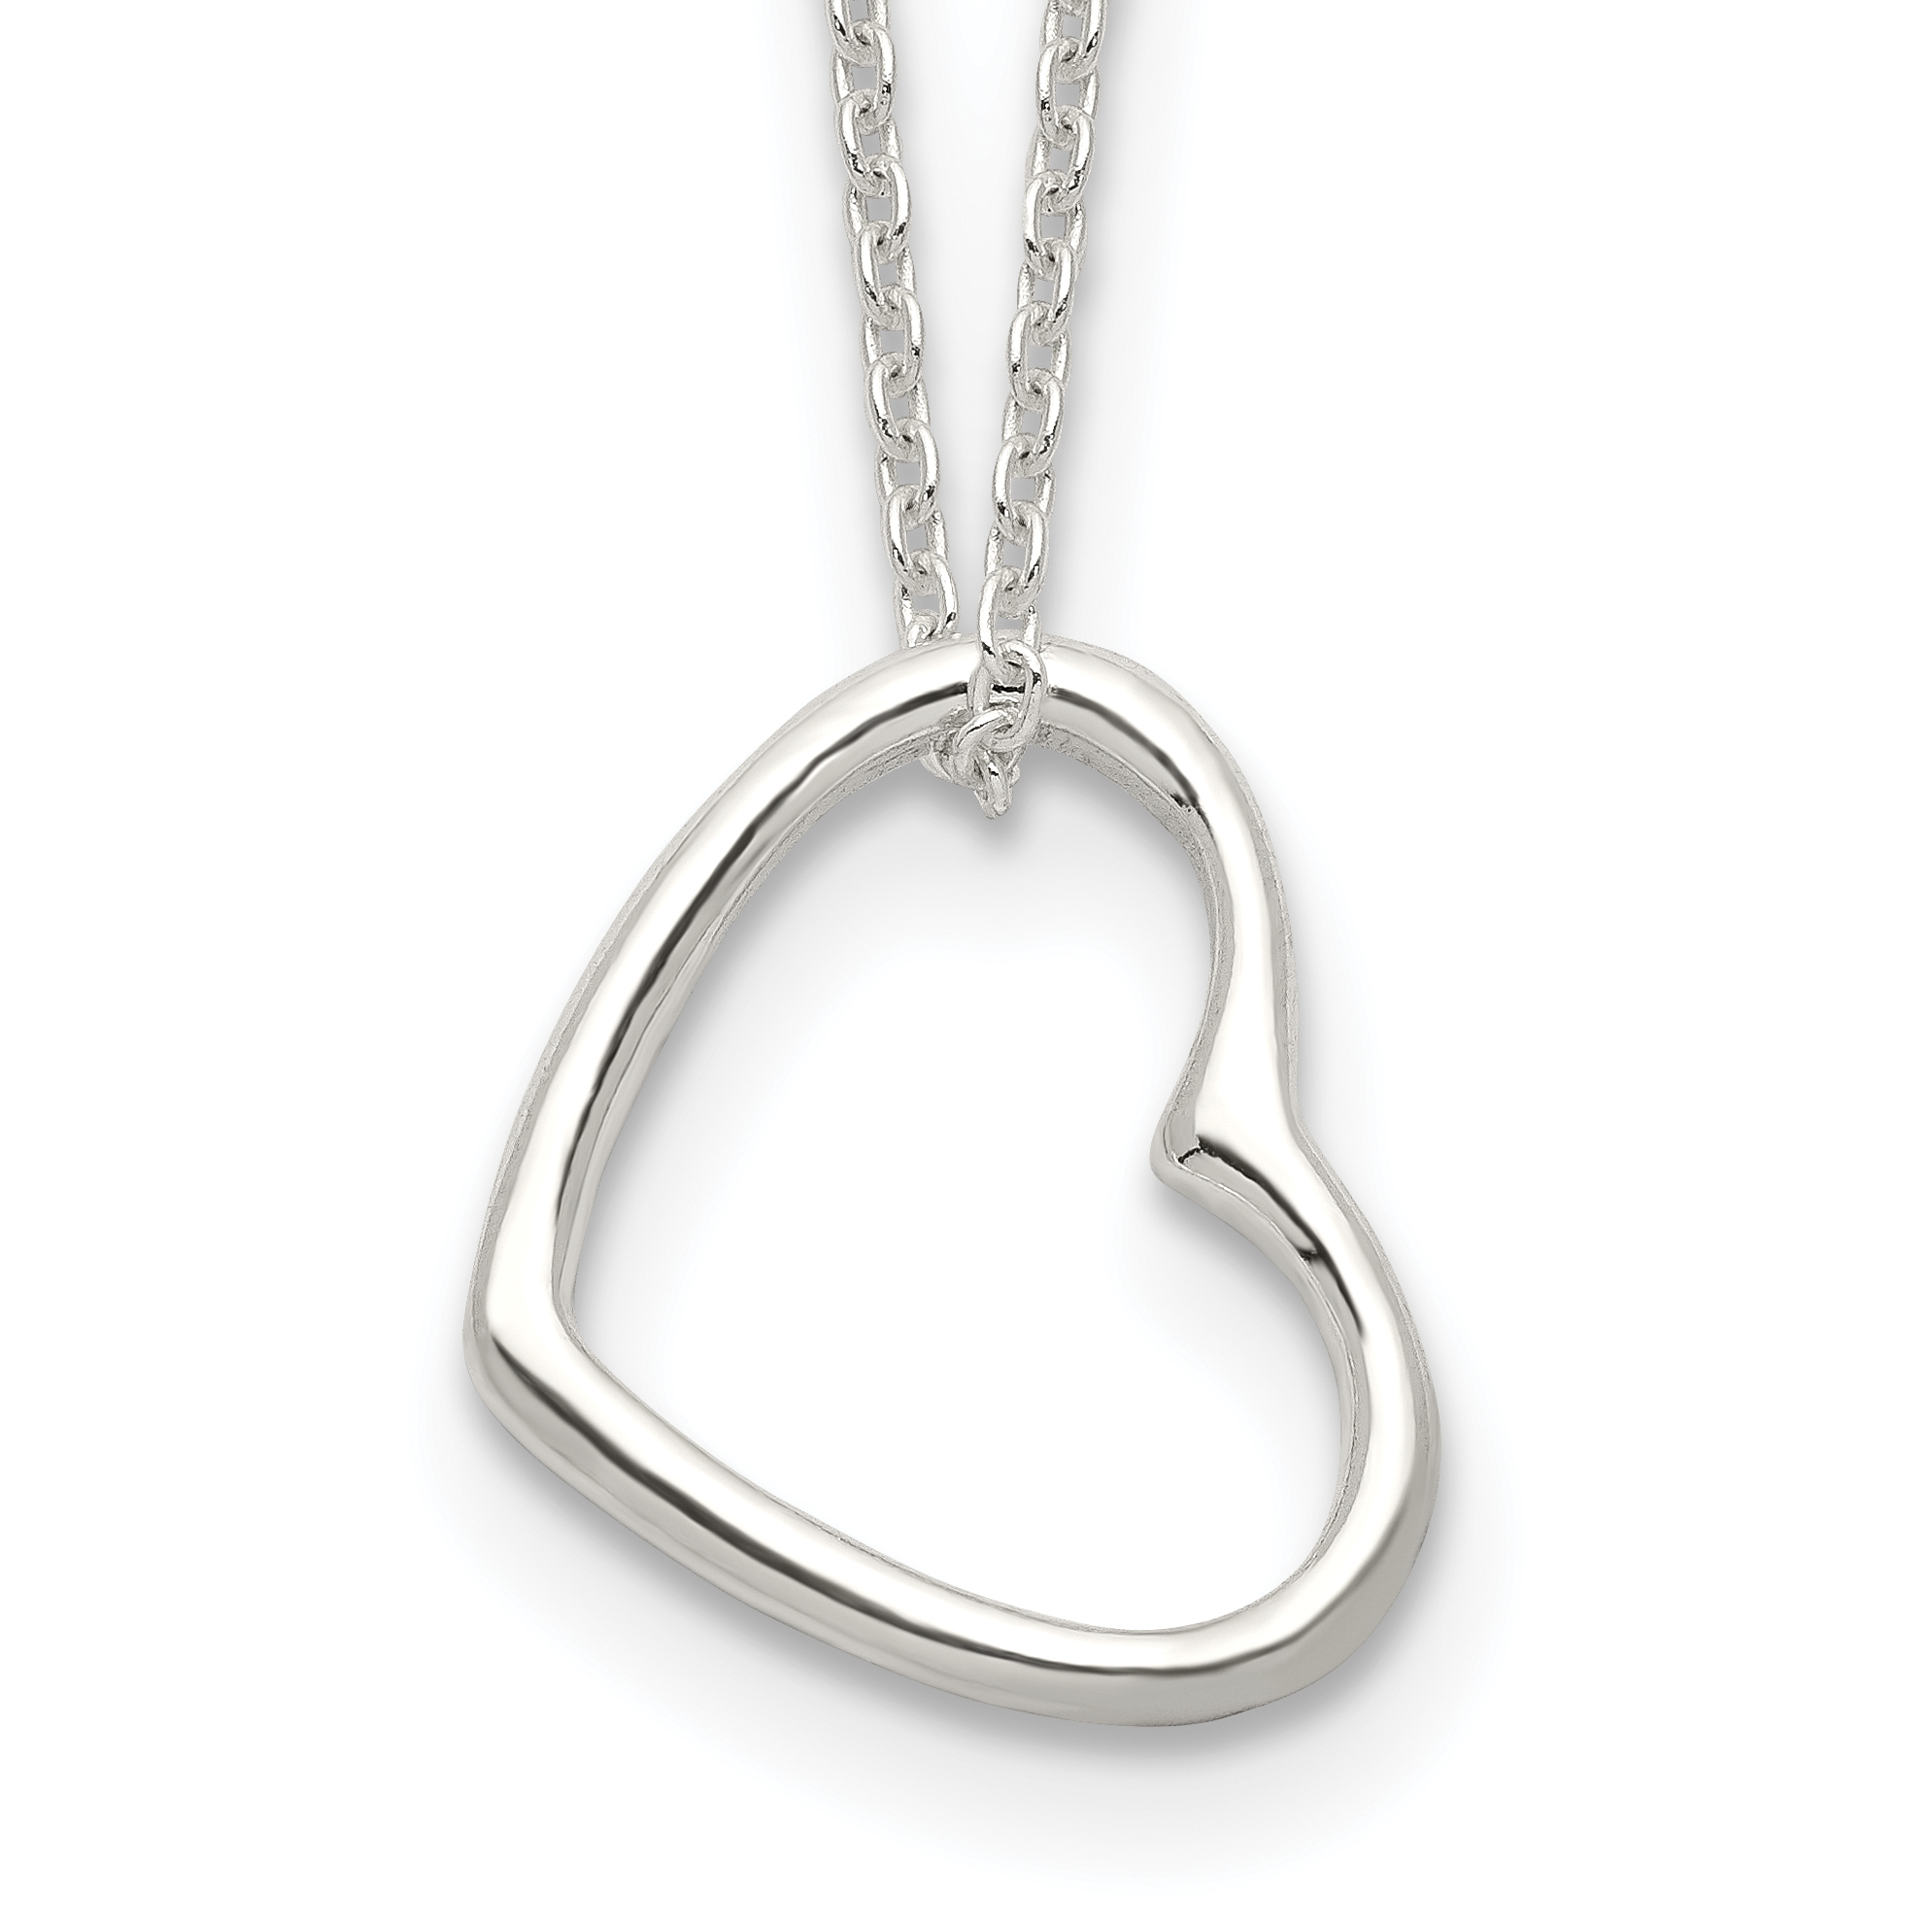 Sterling Silver Heart 14 IN w/2 In EXT Necklace   Weight: 2.5 grams, Length: 16mm, Width: 0mm